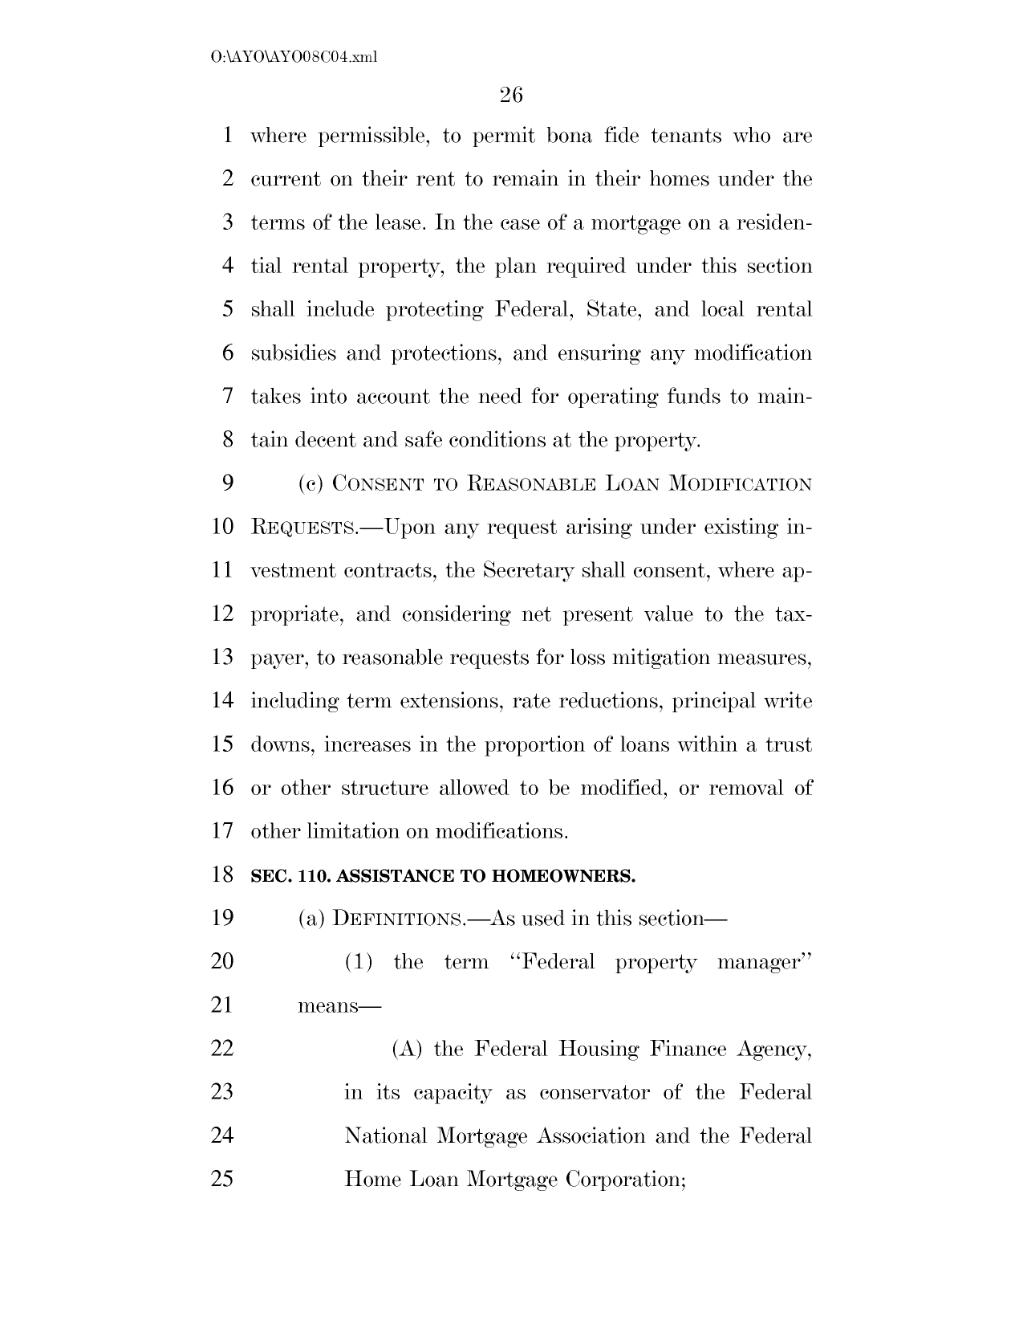 Page:Emergency Economic Stabilization Act of 2008 djvu/26